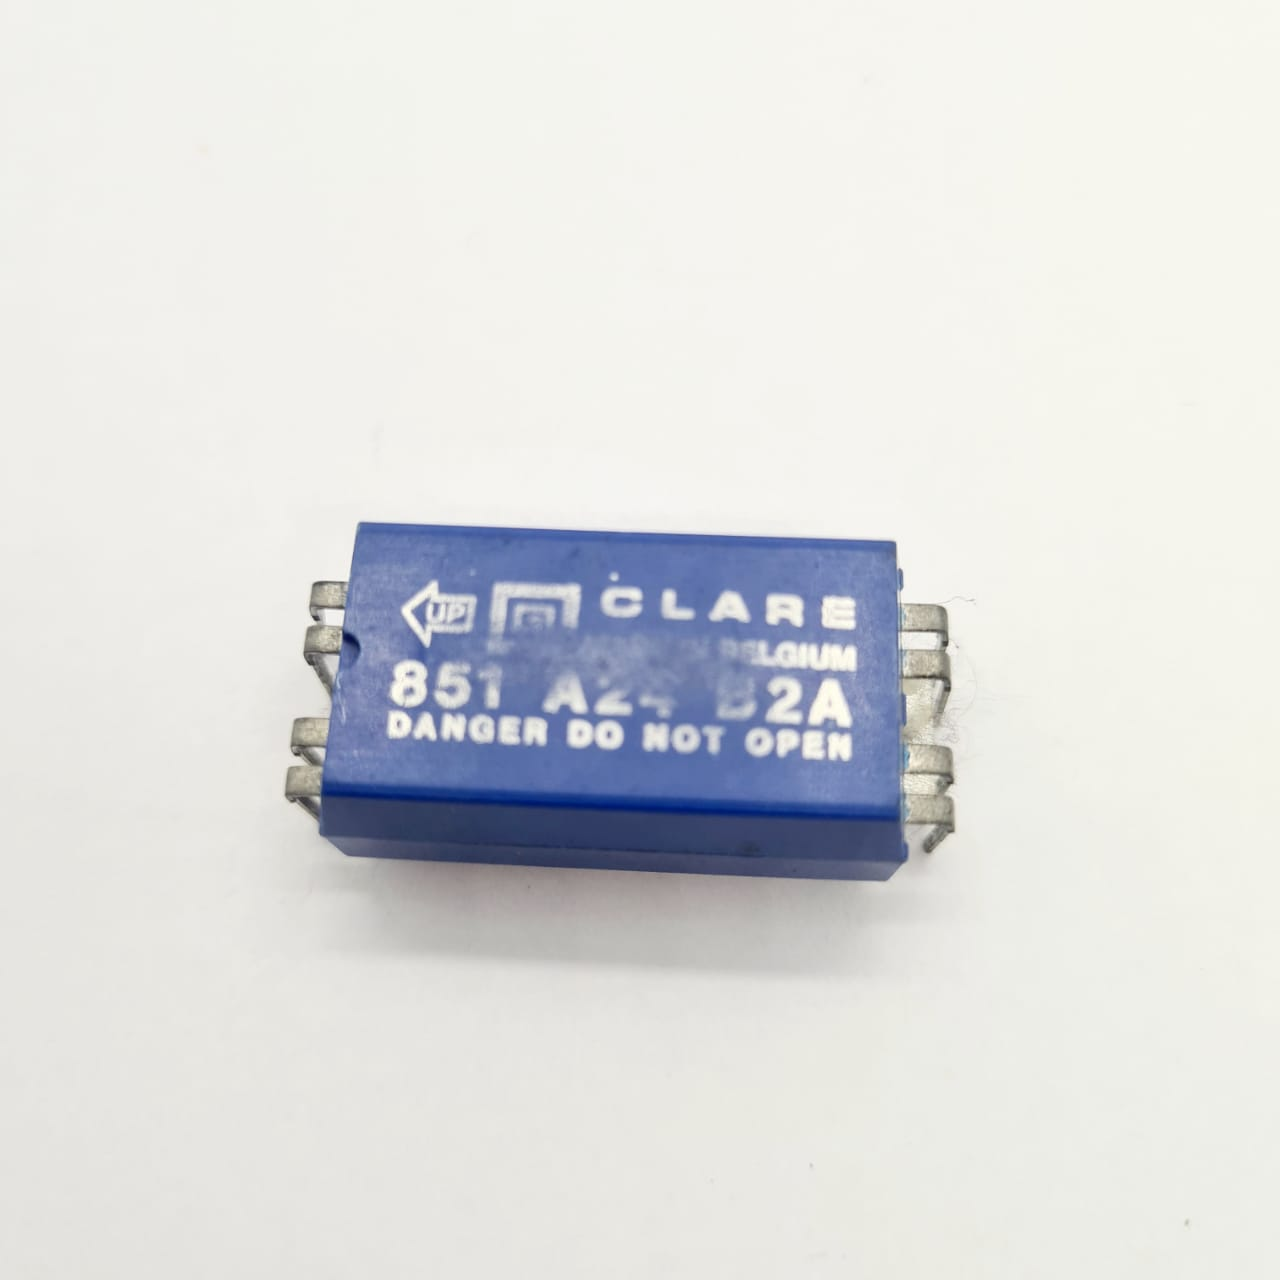 Rele Clare Mercury Wetted Relay 851 A24 B2A